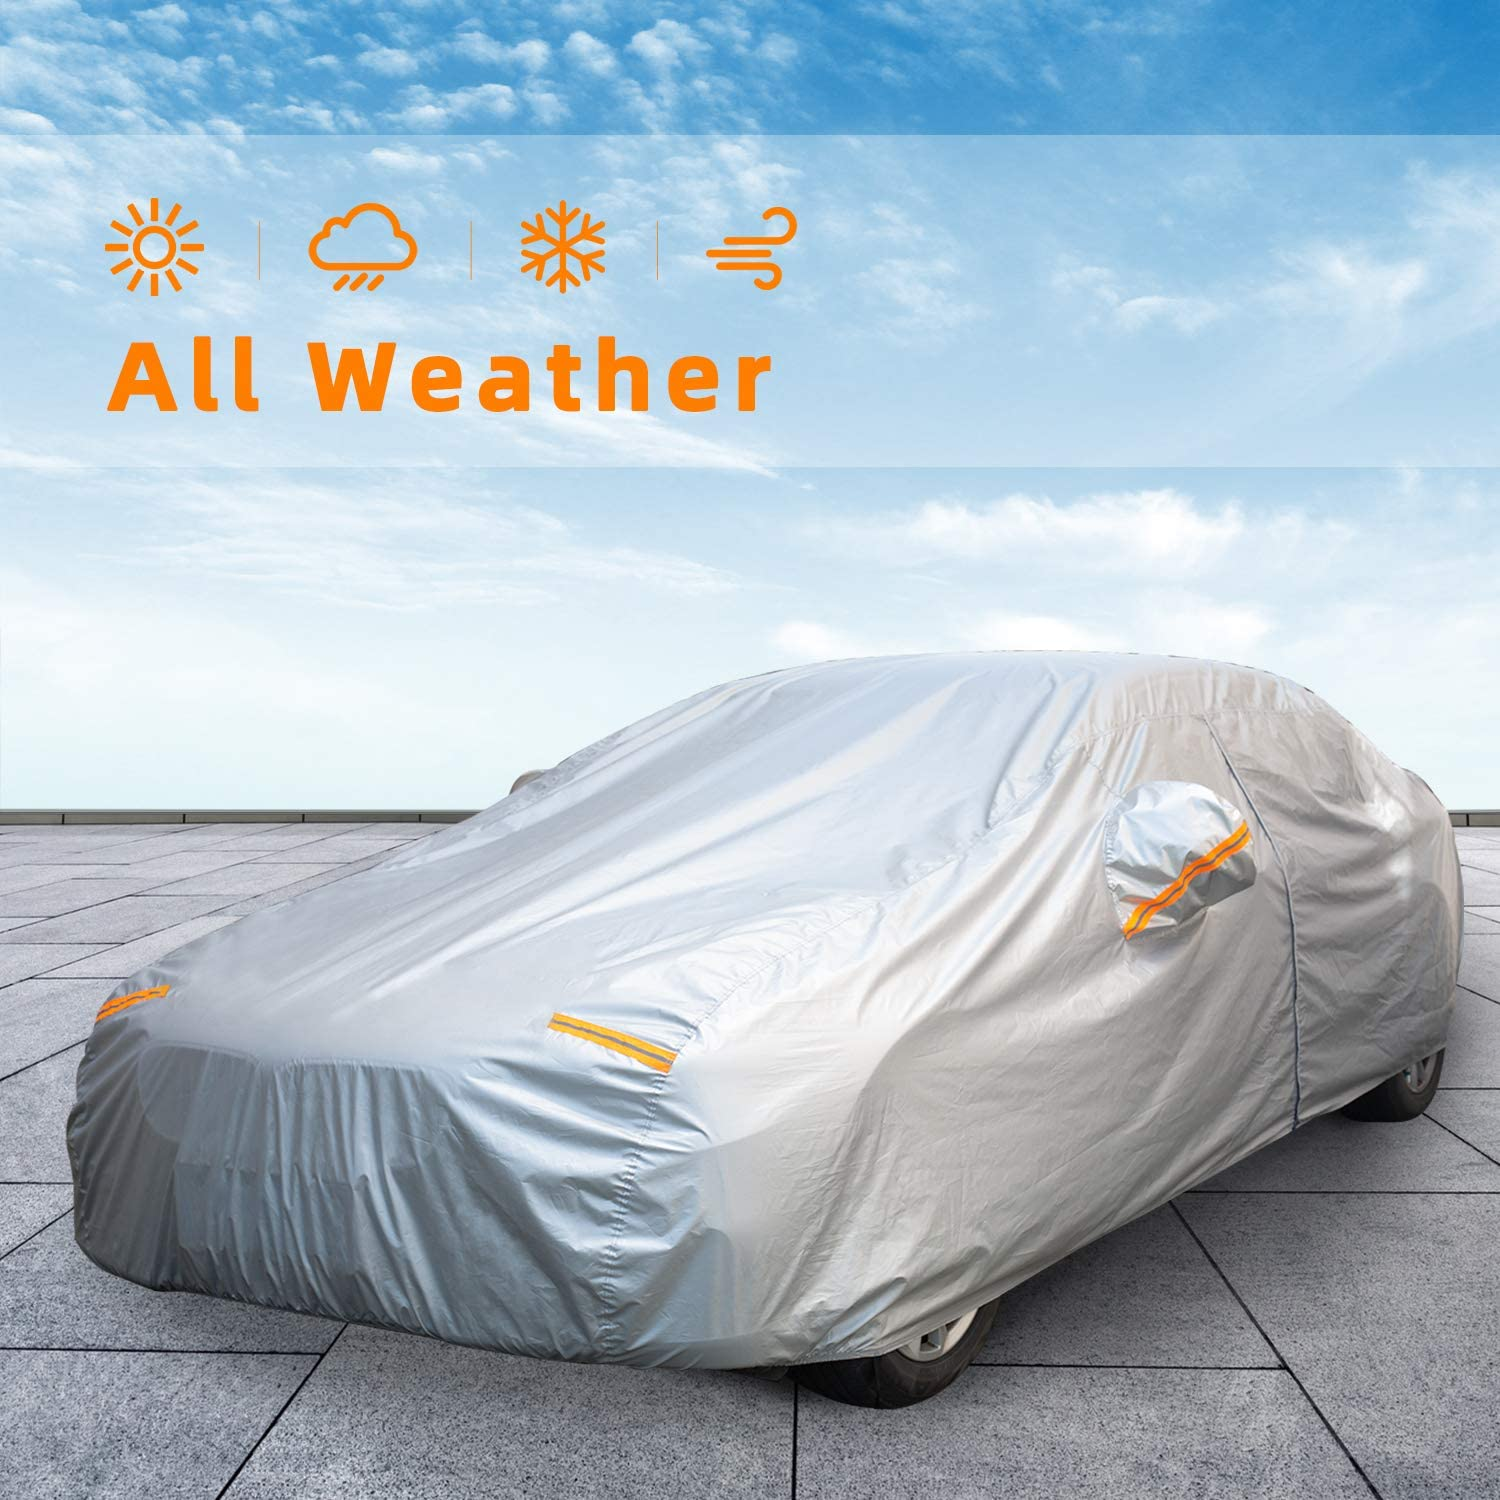 Autsop Car trust Cover Max 80% OFF Waterproof All Automobiles Weather Outdoor for